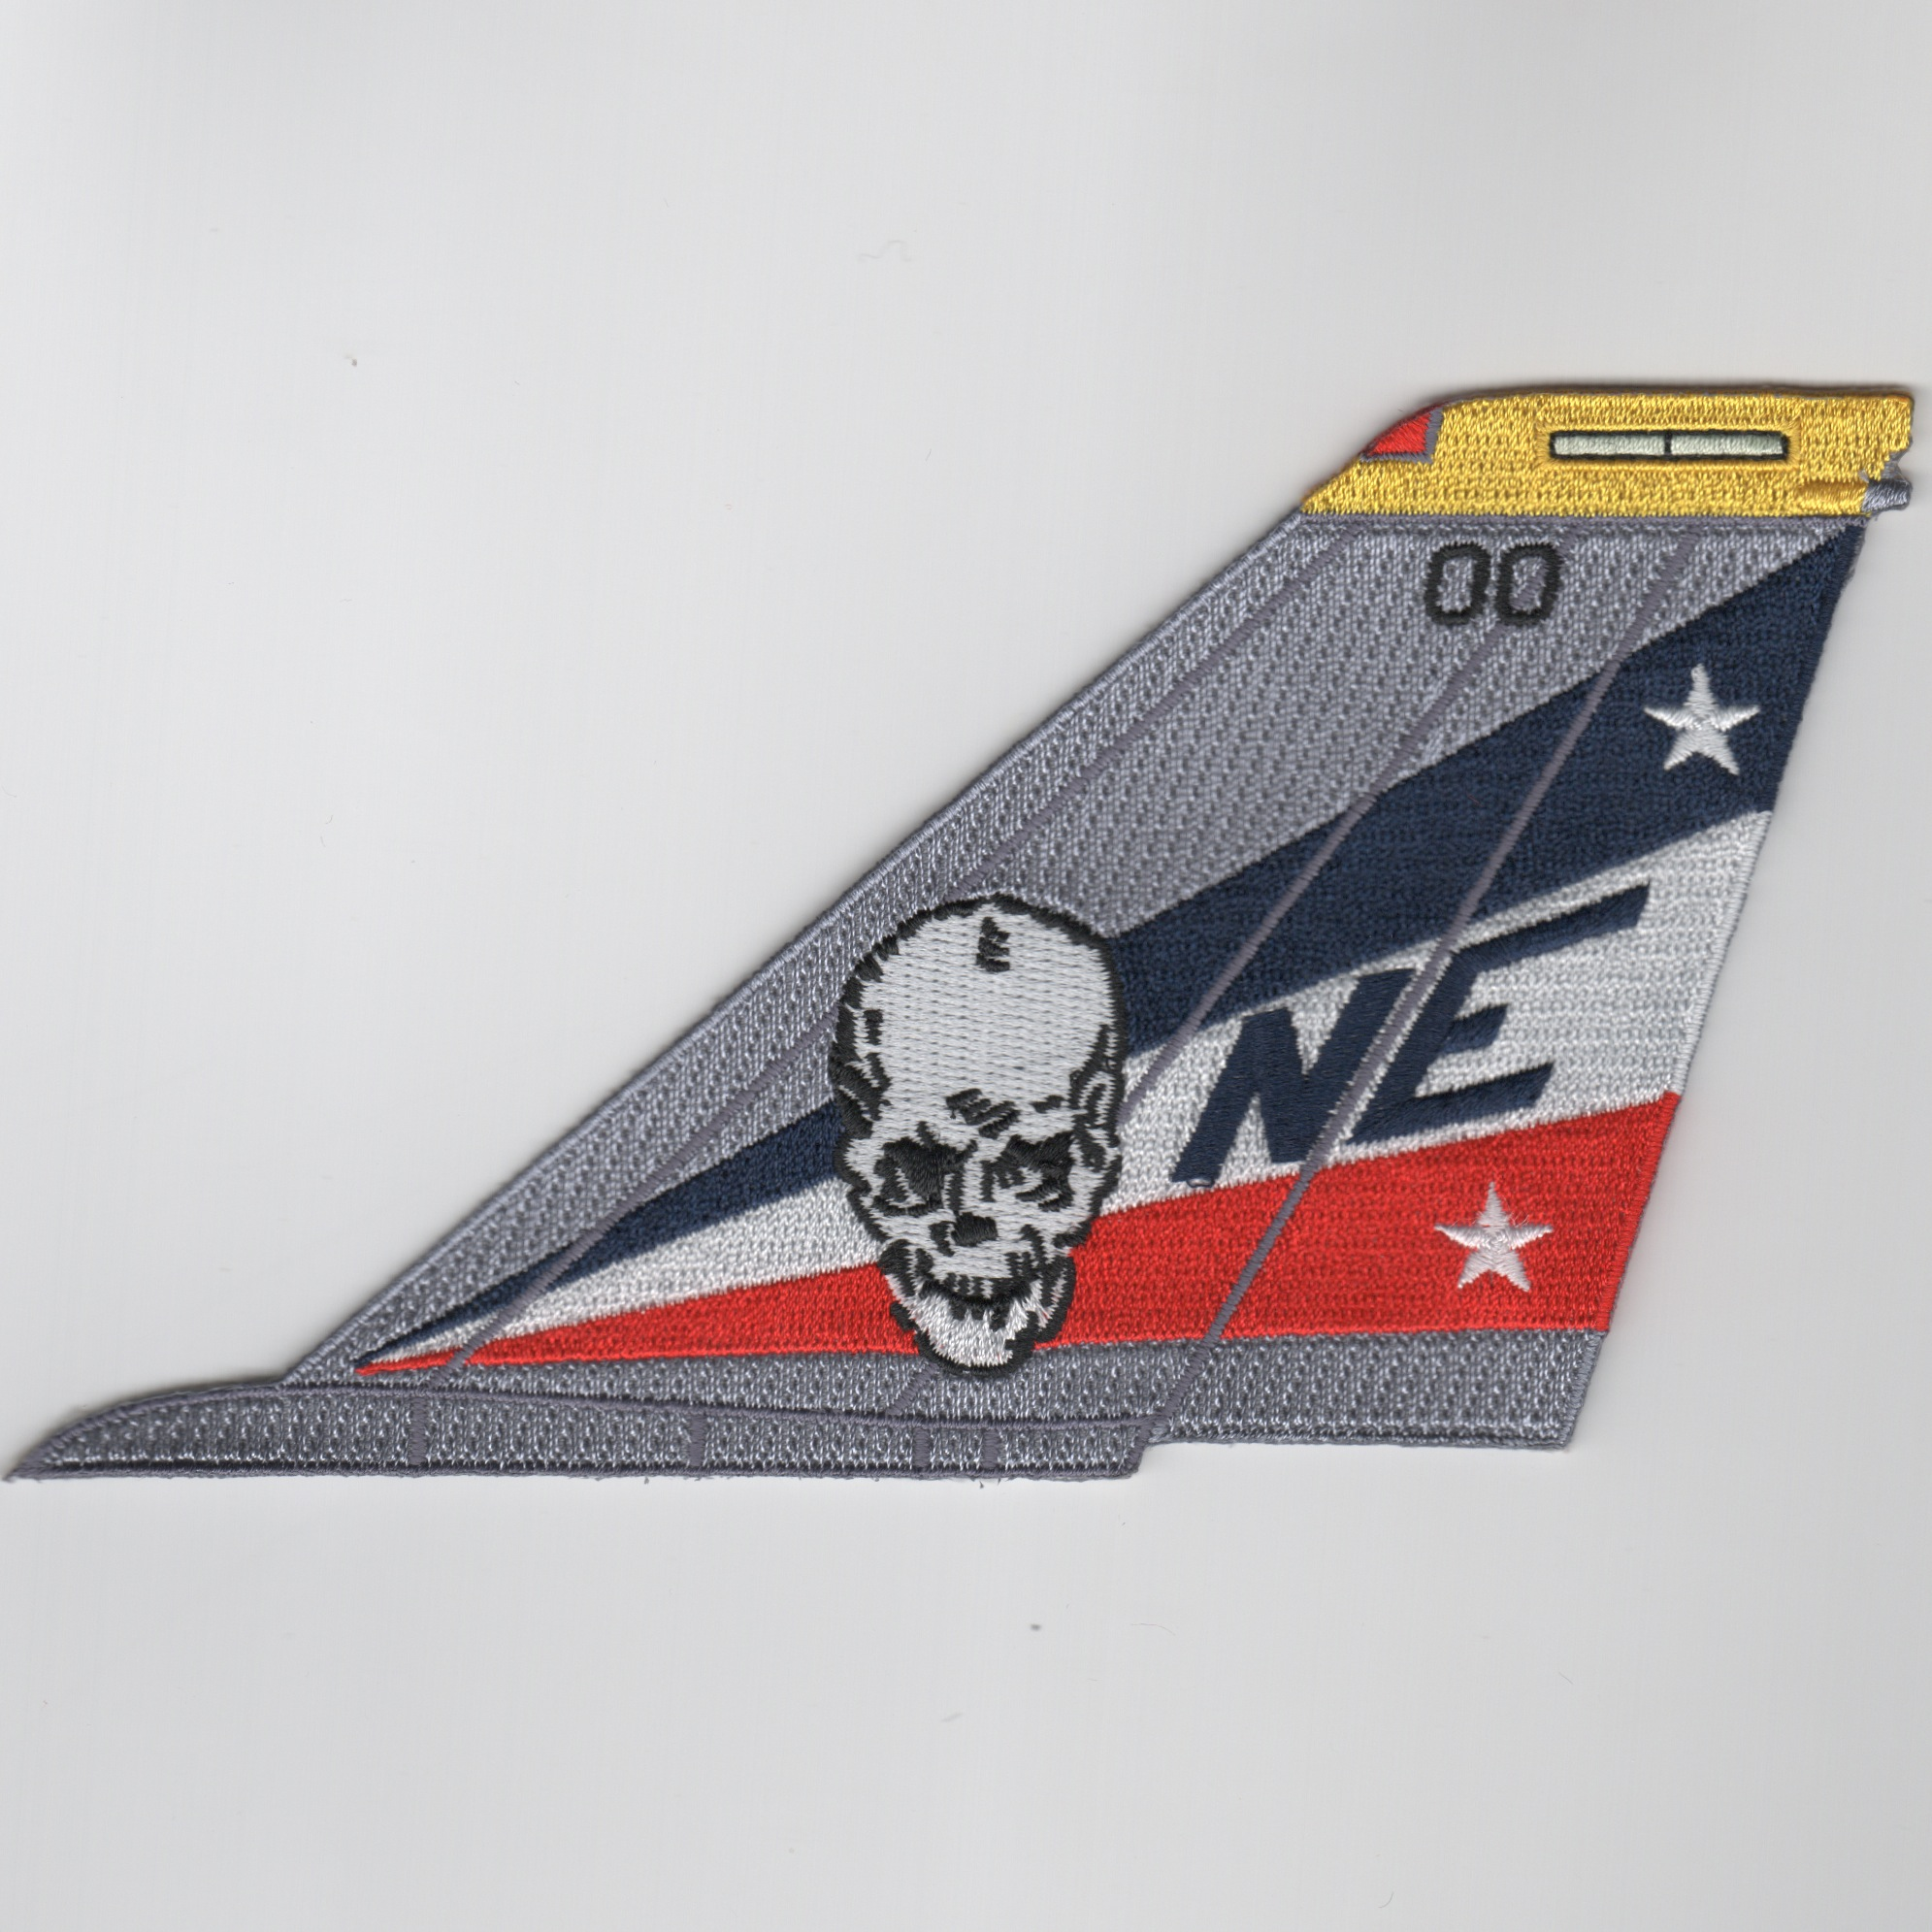 VF-2 F-14 Tomcat Tail (R/W/B-Skull-No Text)